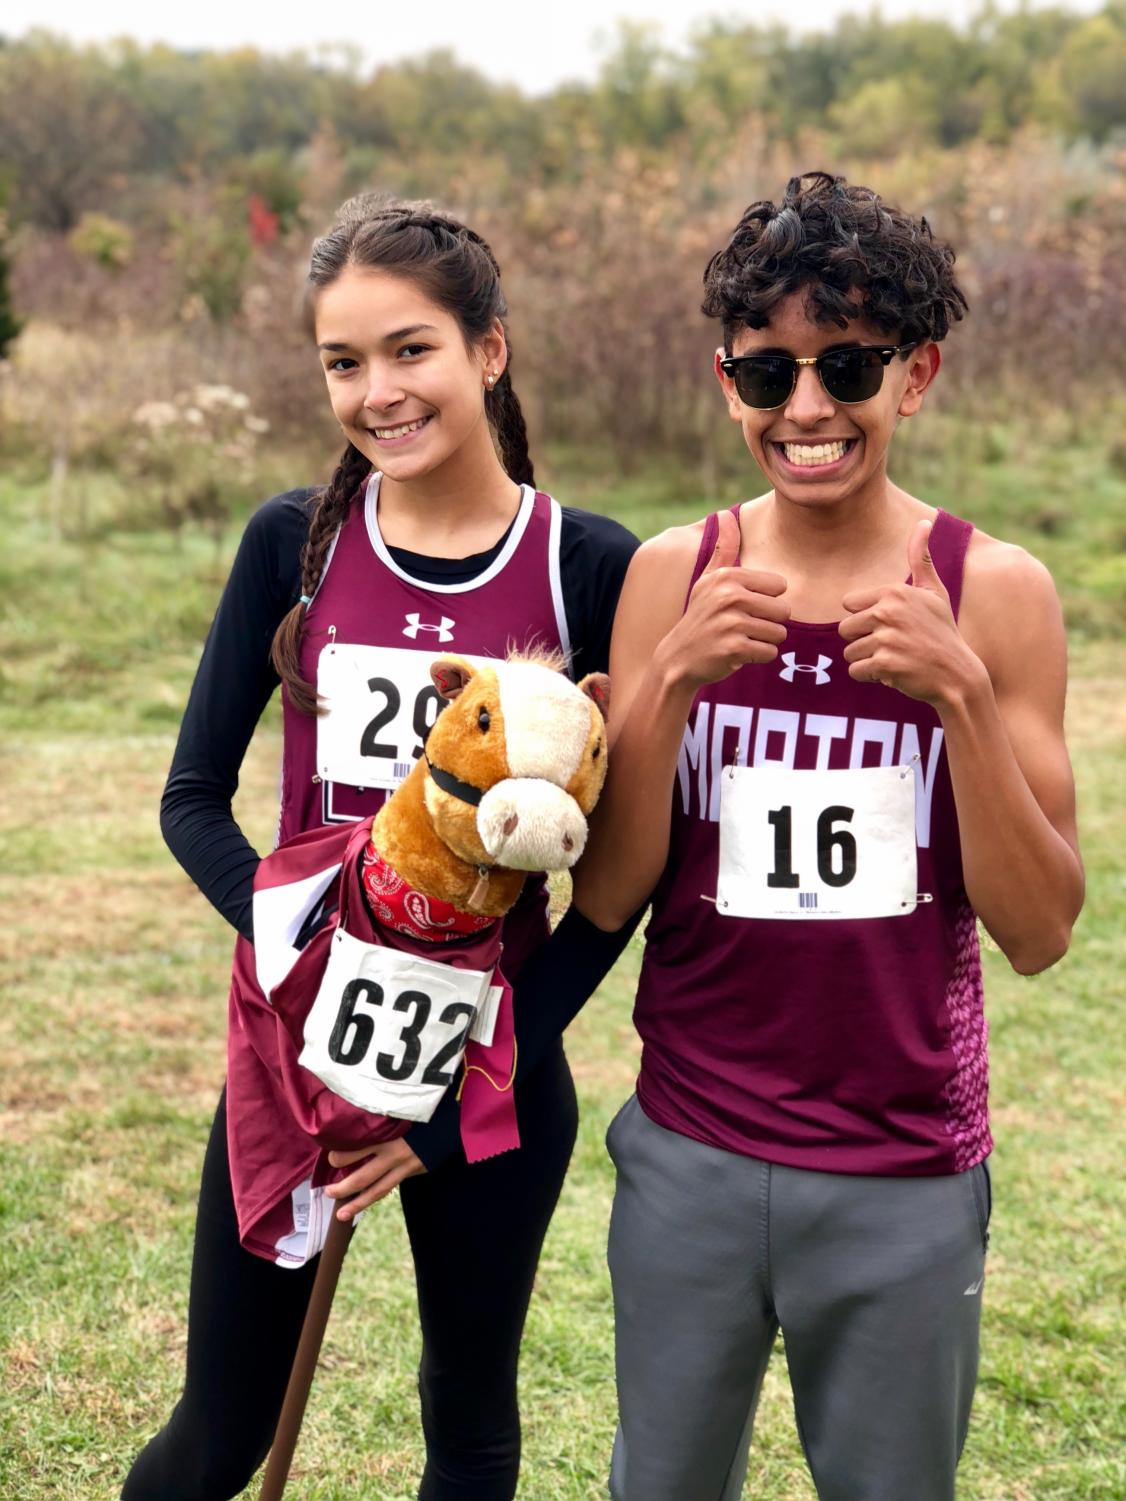 Guillermo and Paola after qualifying for the state meet.